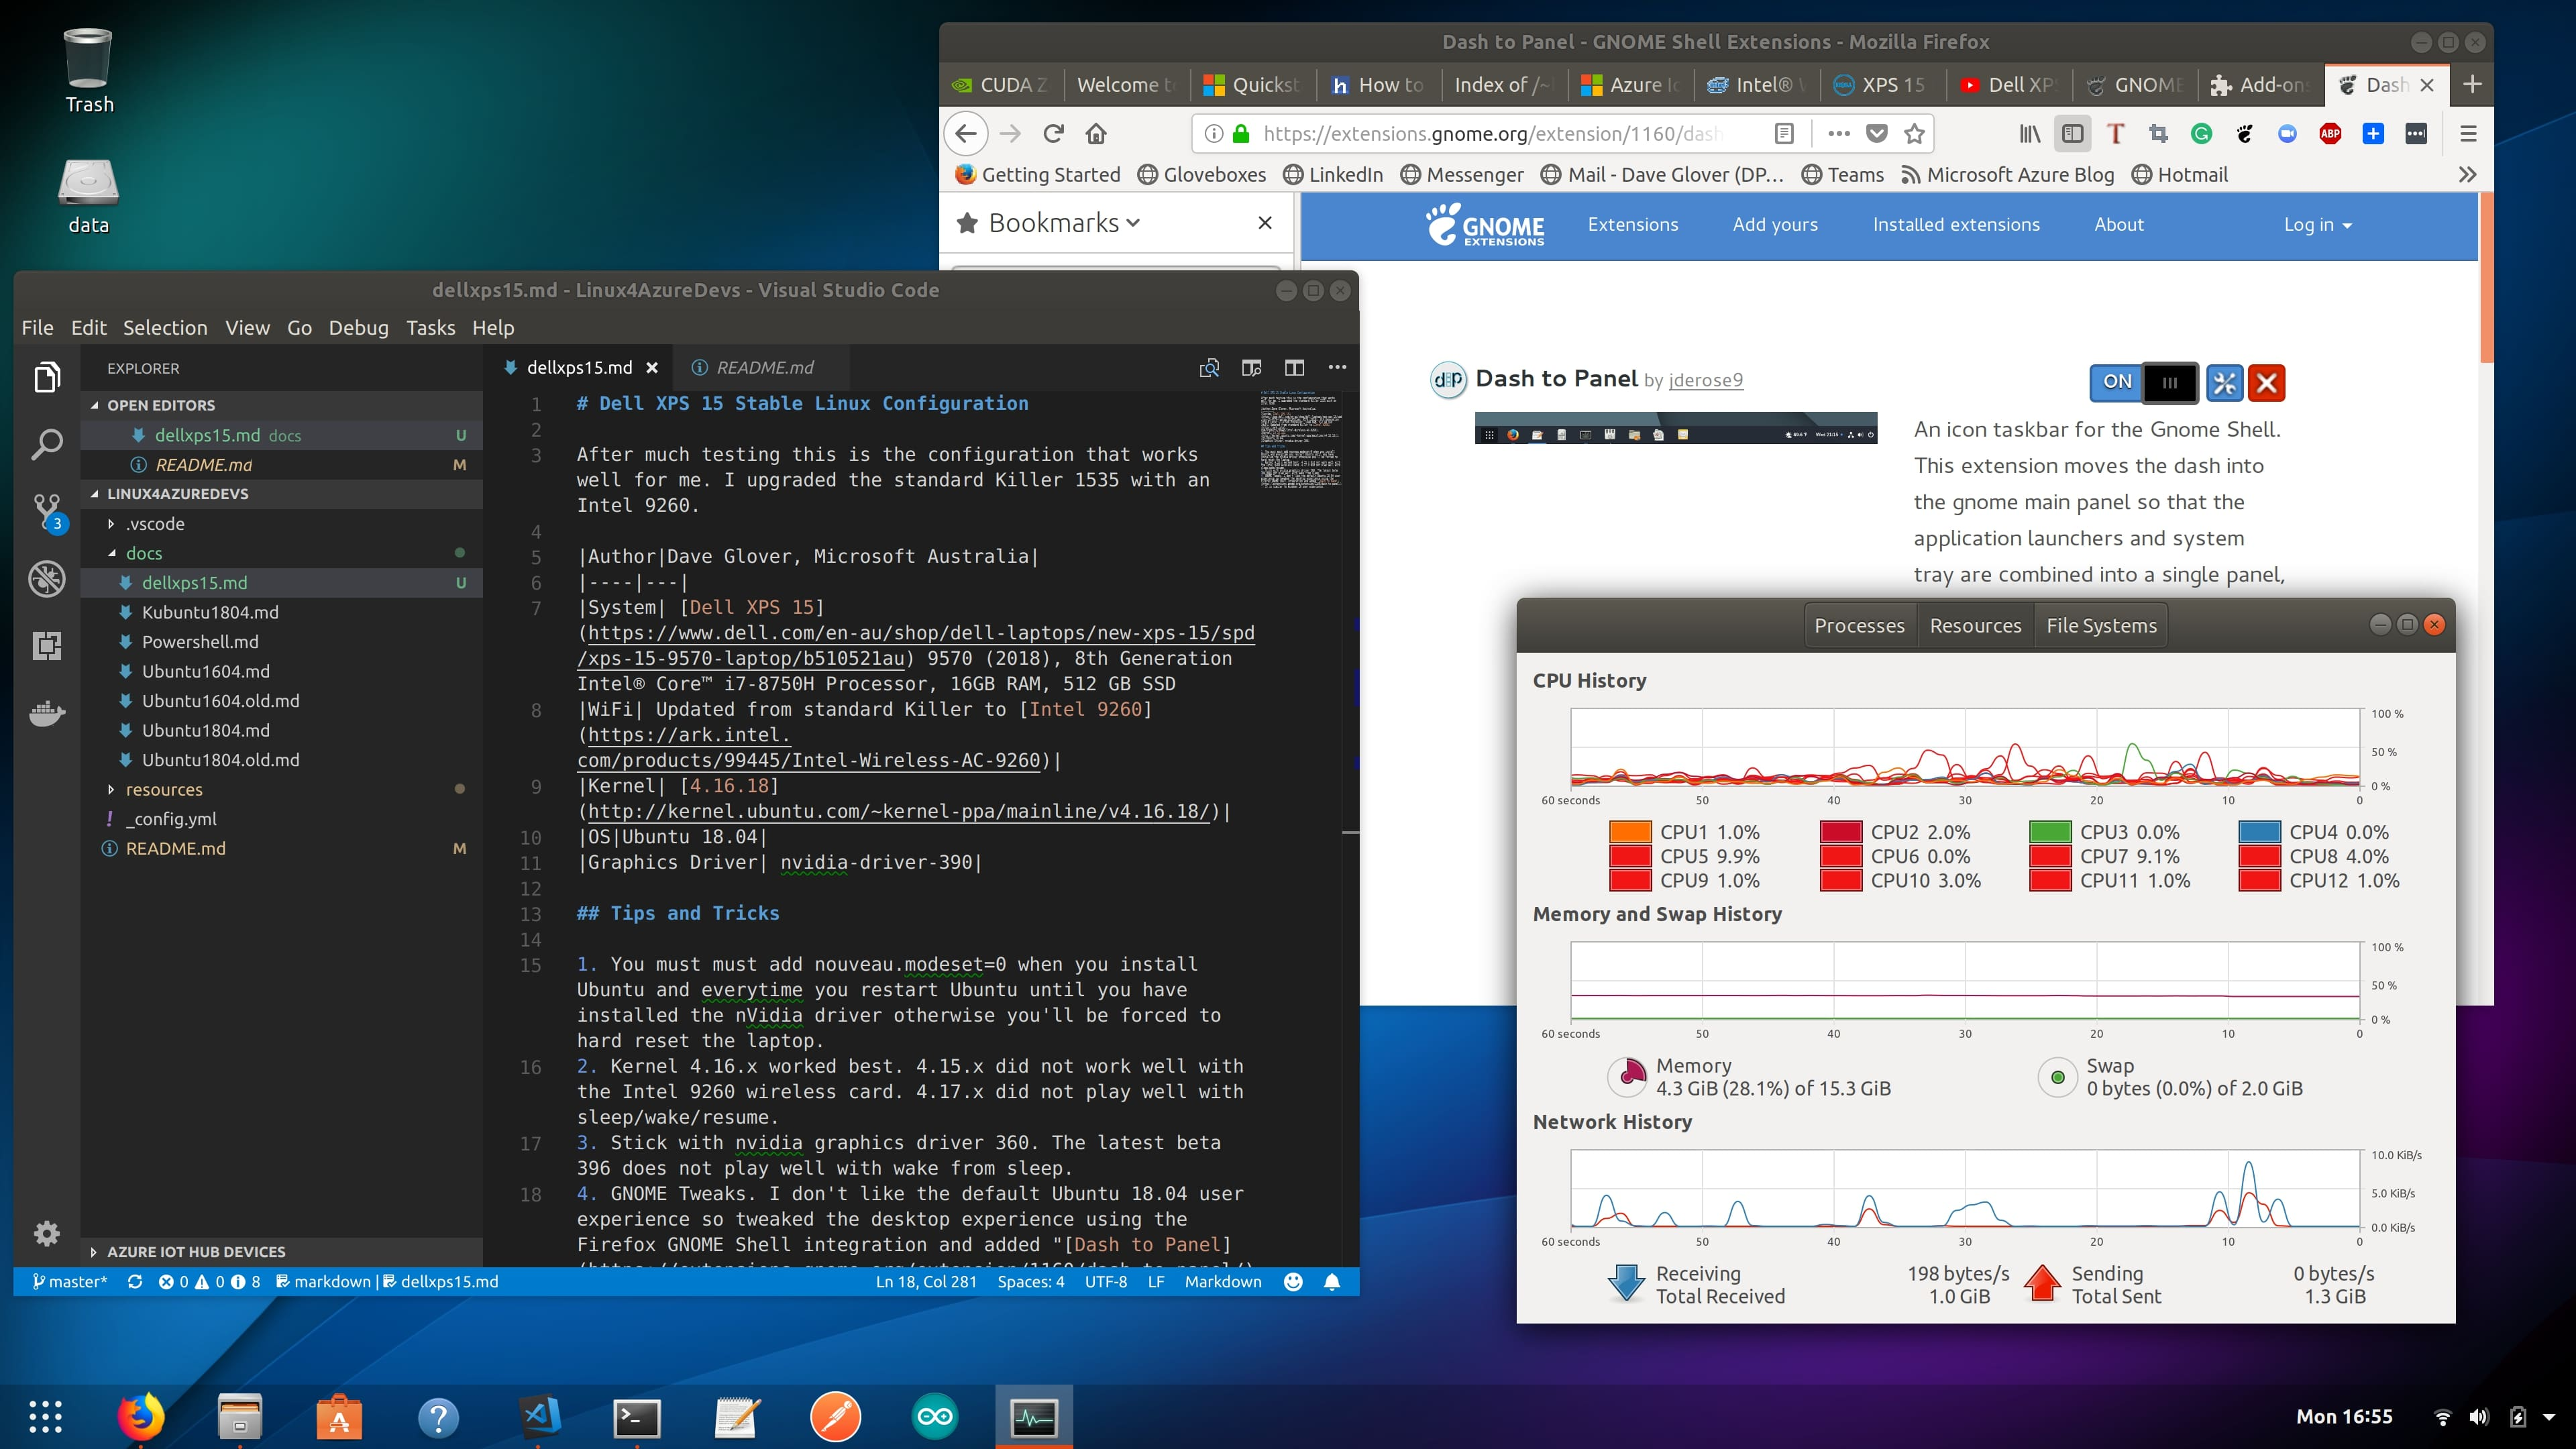 Dell XPS 15 Stable Linux Configuration | Ubuntu-for-Azure-Developers